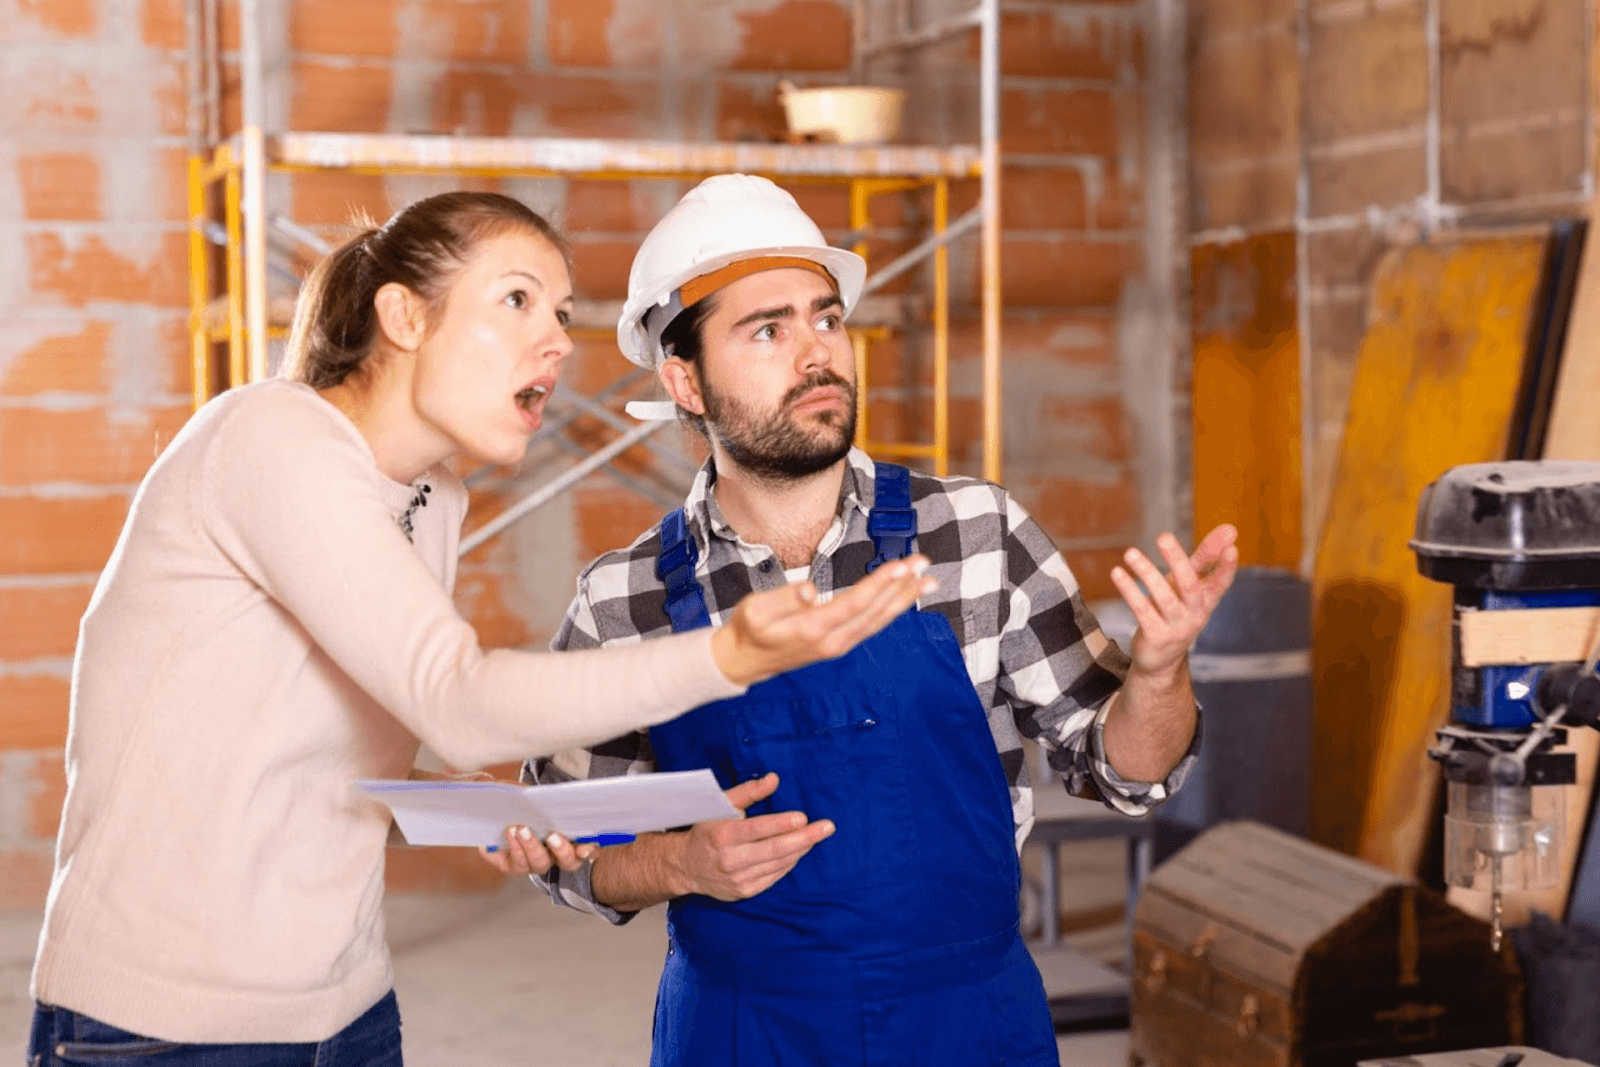 A homeowner dissatisfied with the work of a home renovator